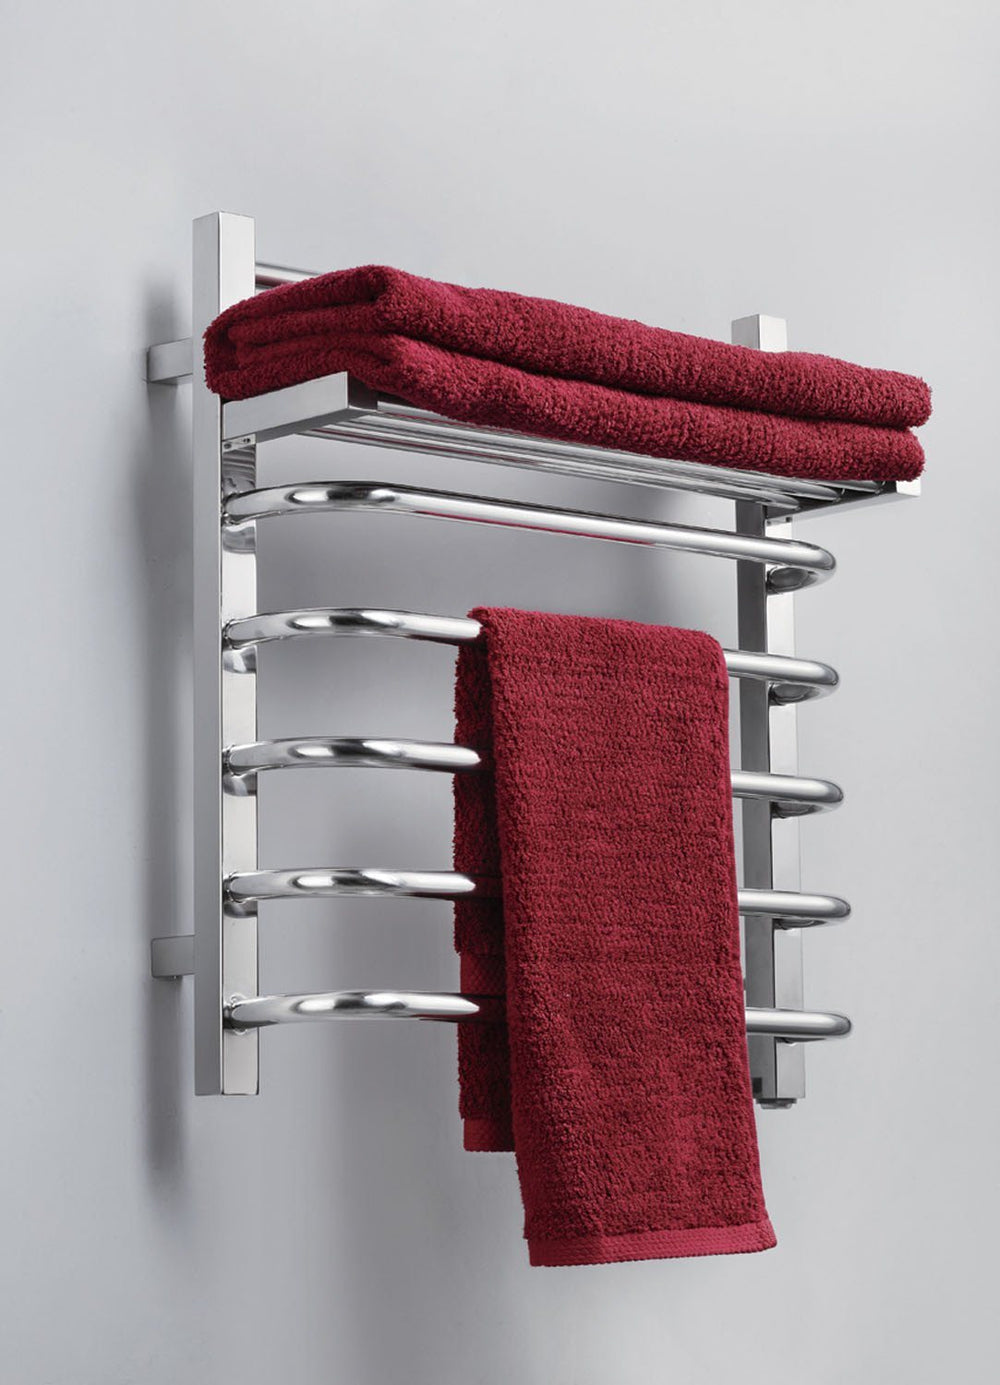 Virtu USA Koze 118 Wall Mounted Electric Towel Warmer in Polished Chrome Towel Warmers Virtu USA